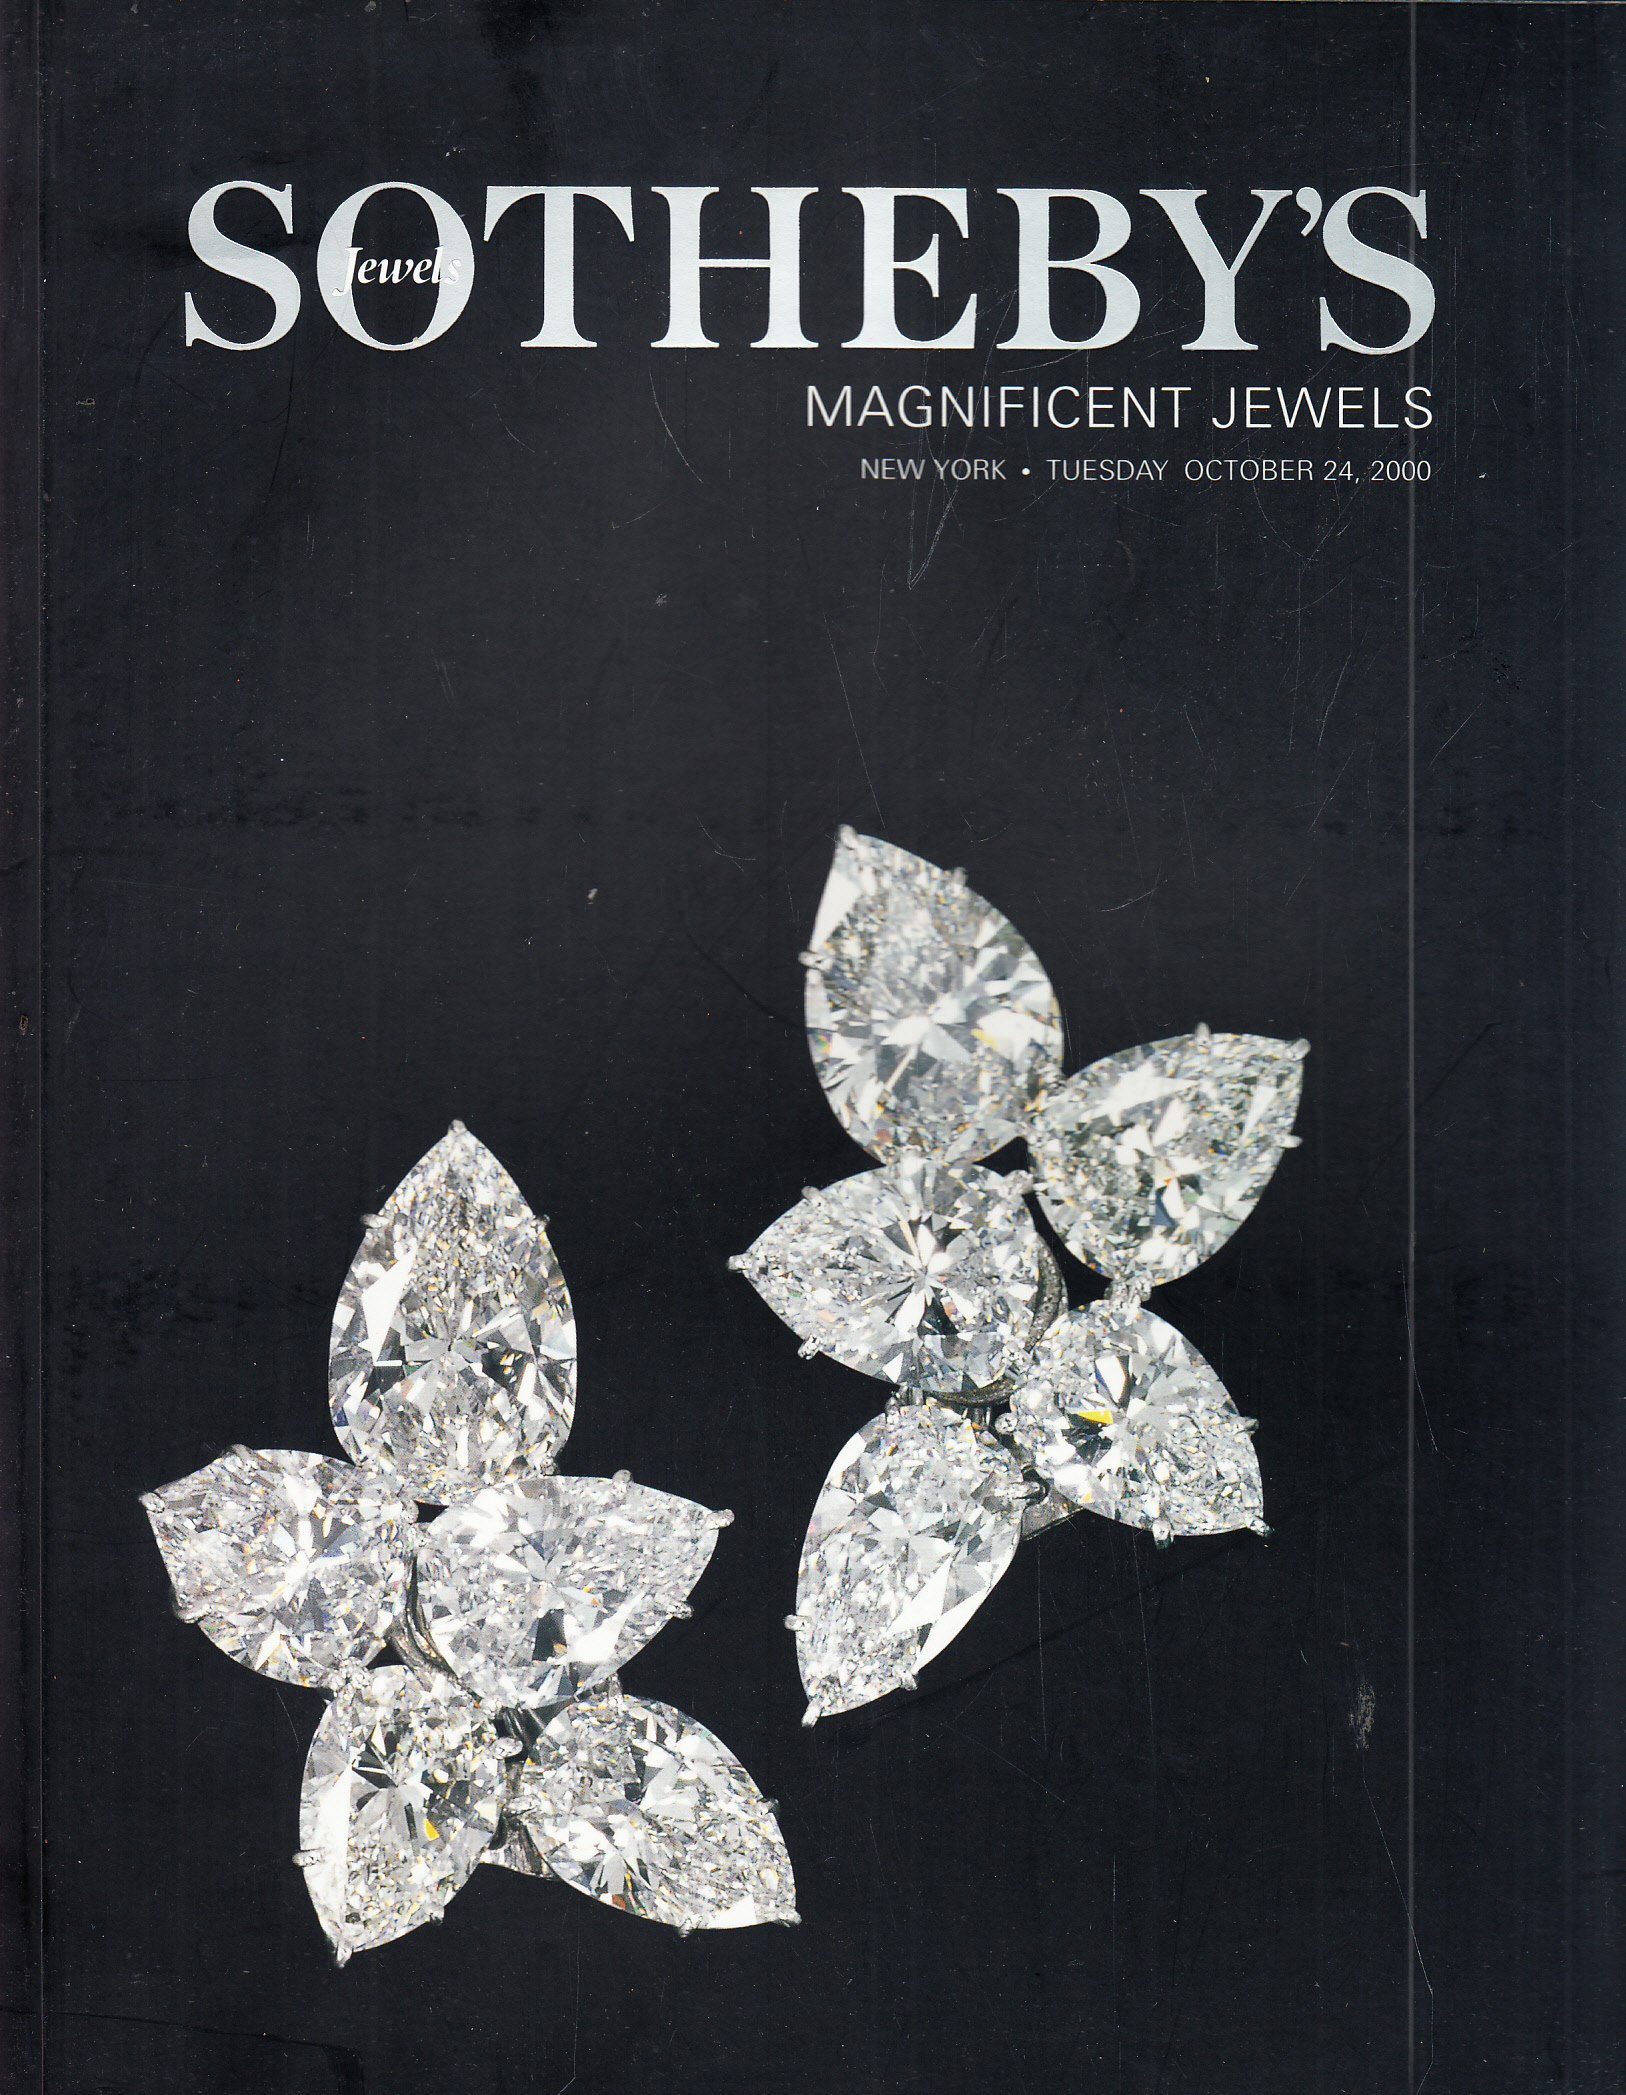 IH Sotheby's Magnificent Jewels New York 10/24/00 Sale ...